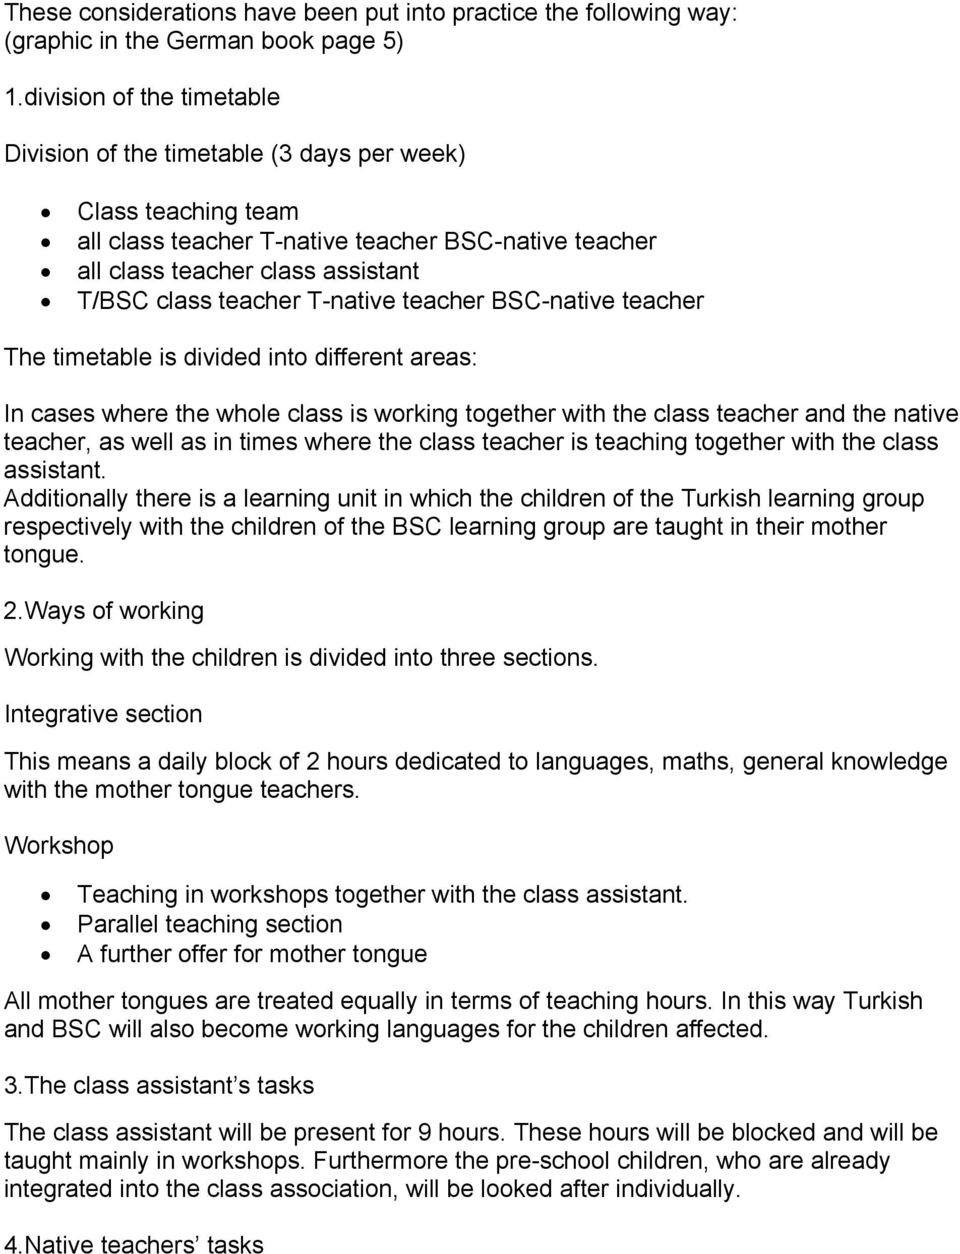 T-native teacher BSC-native teacher The timetable is divided into different areas: In cases where the whole class is working together with the class teacher and the native teacher, as well as in